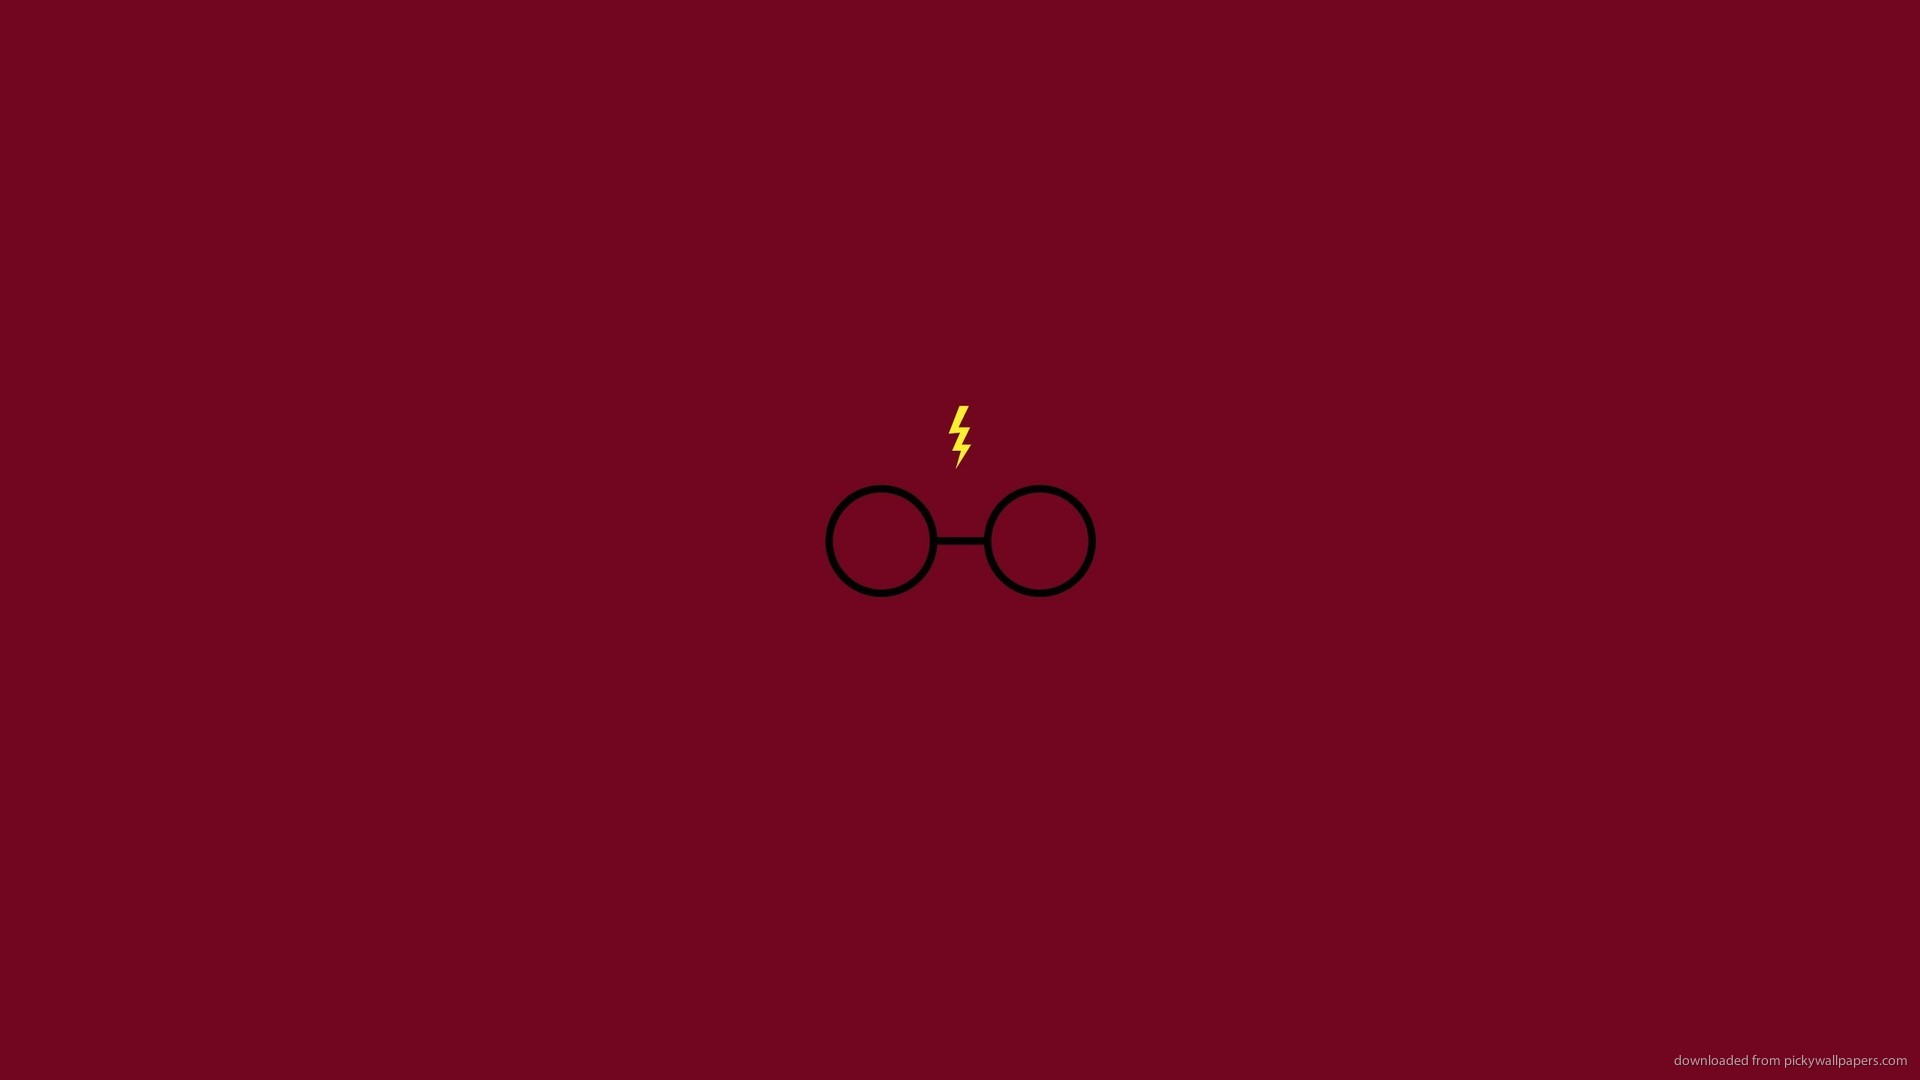 Harry Potter Wallpaper (77+ Images